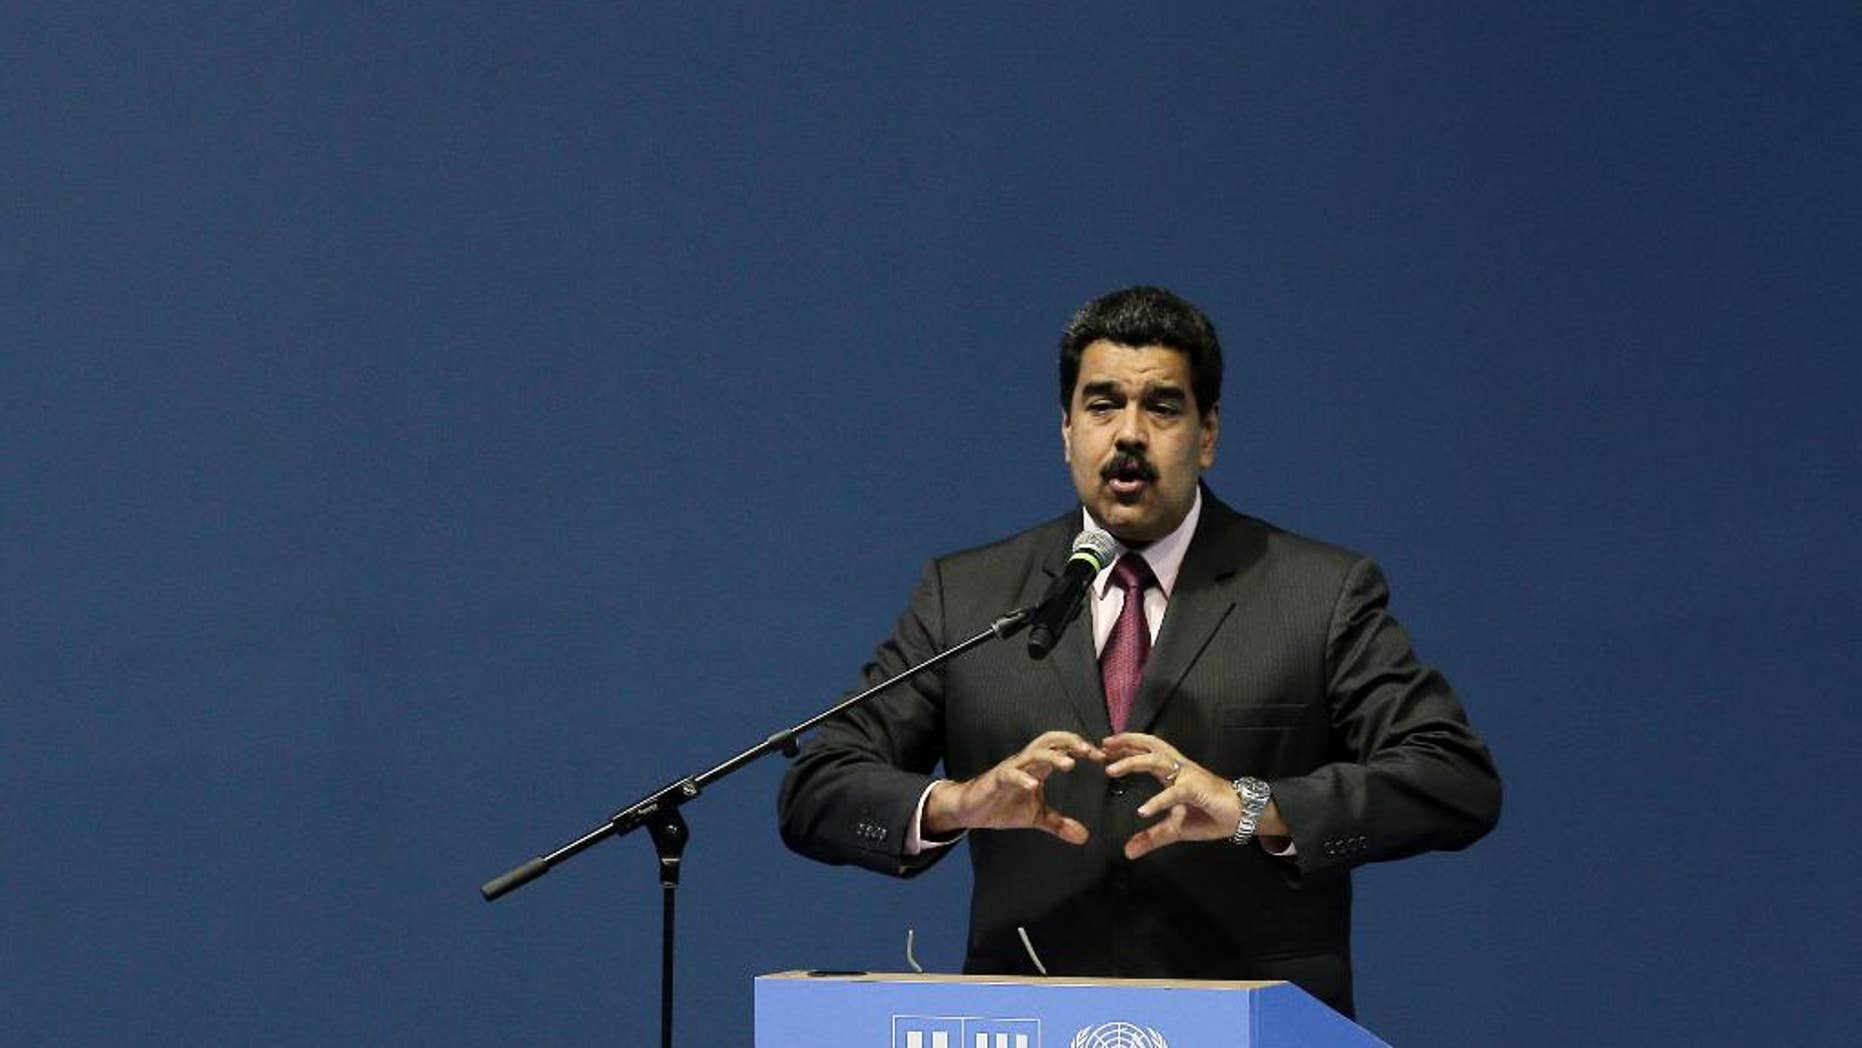 Venezuela's President Nicolas Maduro speaks during the opening of the third United Nations Habitat Conference, in Quito, Ecuador, Monday, Oct. 17, 2016. The meeting kicked off in Quito on Monday with the goal of tackling haphazard growth and fostering livable, self-sustaining cities amid a boom in the global urban population. (AP Photo/Dolores Ochoa)